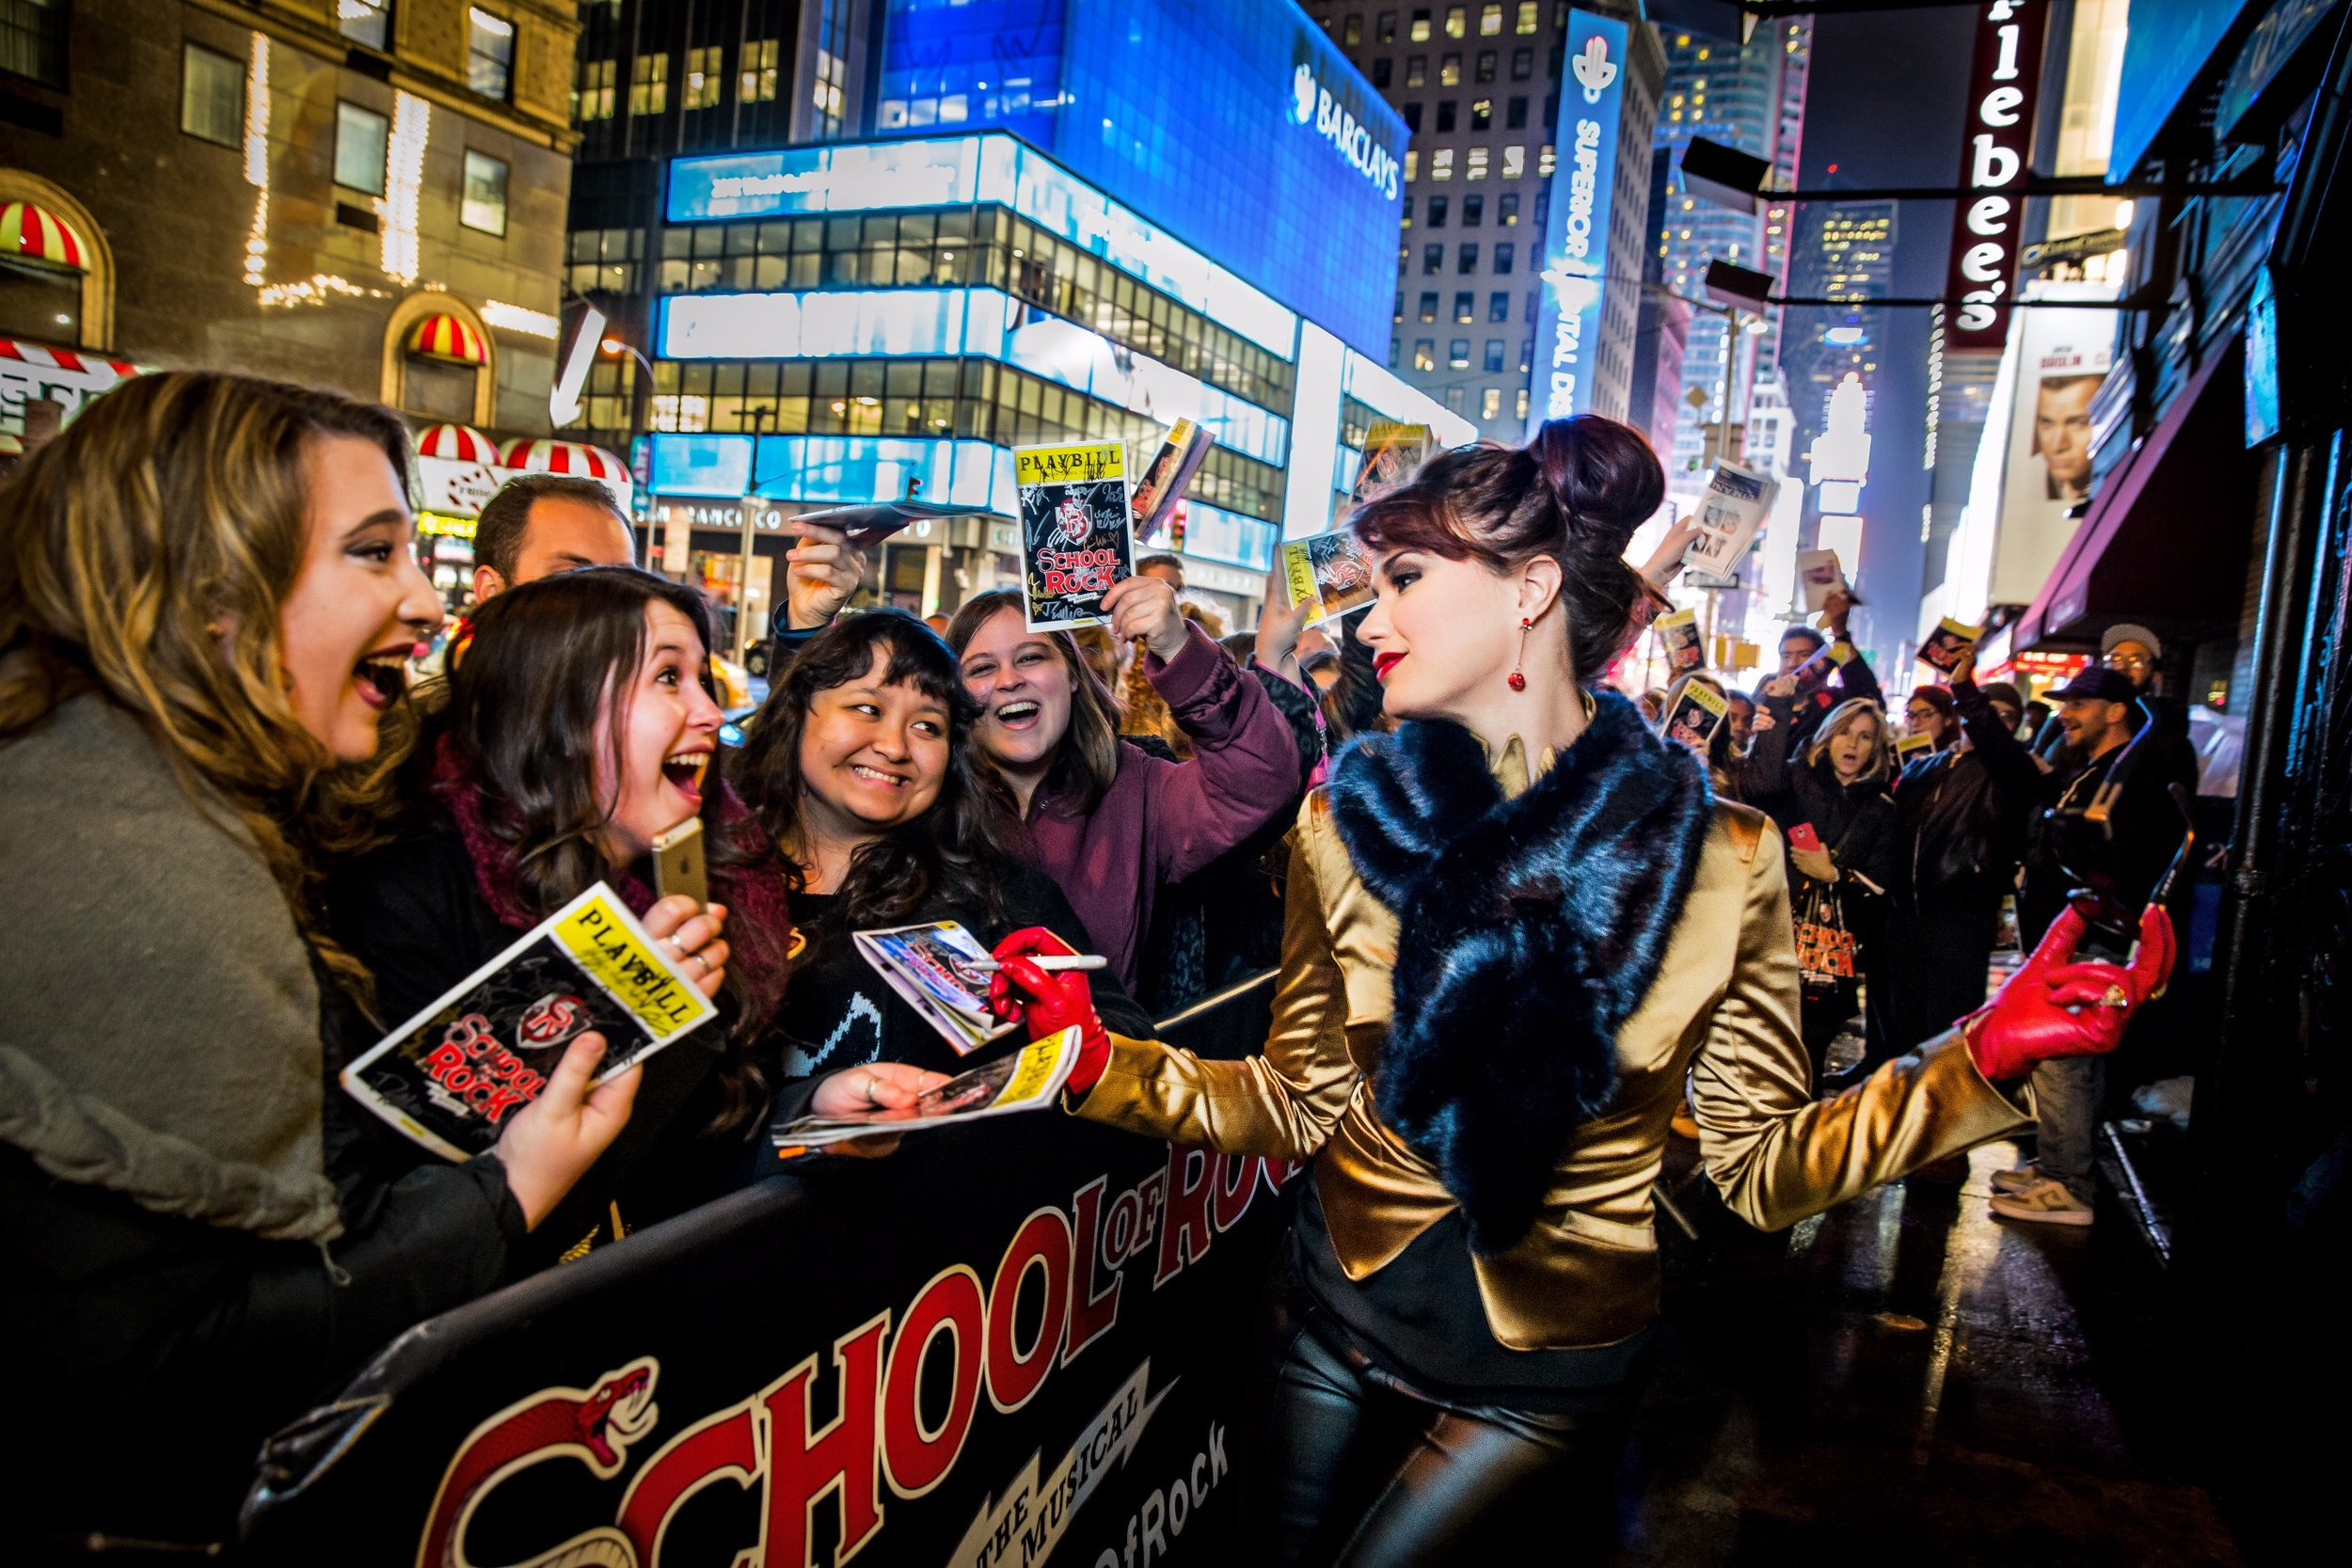 6. Sierra-Boggess_BROADWAYCOM_0377_v001A.jpg